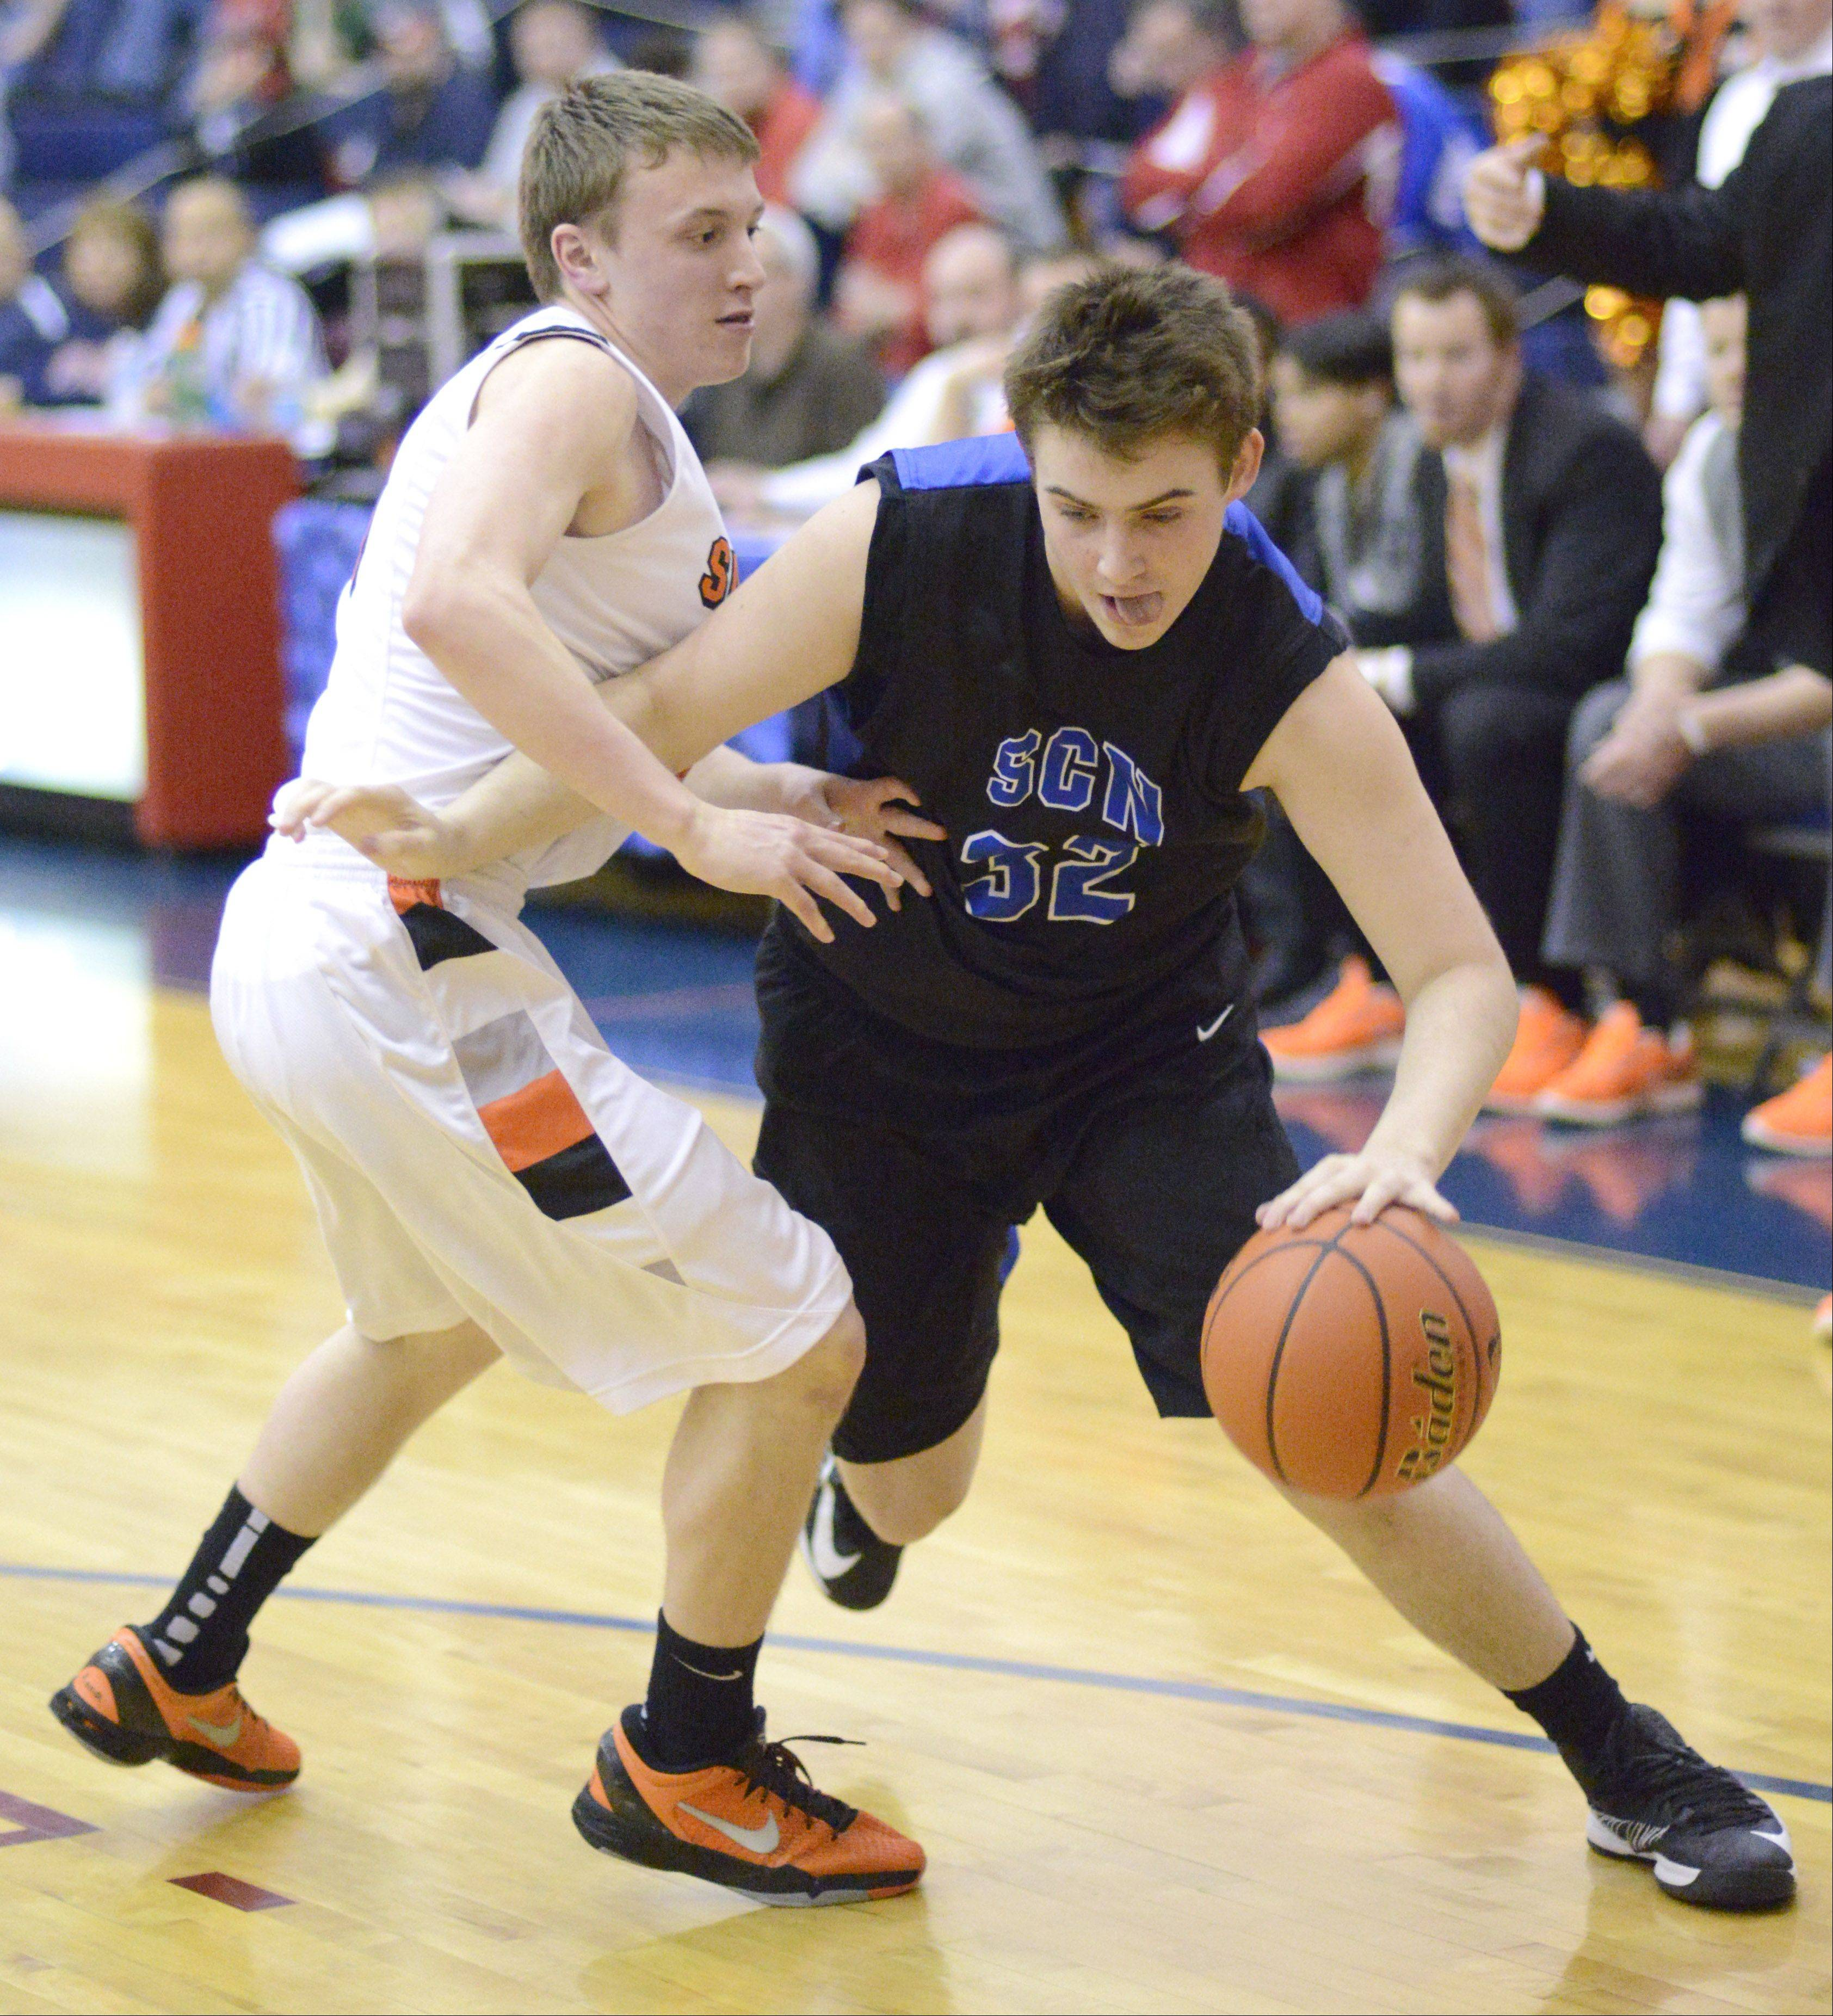 St. Charles North's Jack Callaghan maneuvers around St. Charles East's Ethan Griffiths in the second quarter of the Class 4A regional on Wednesday, February 27.